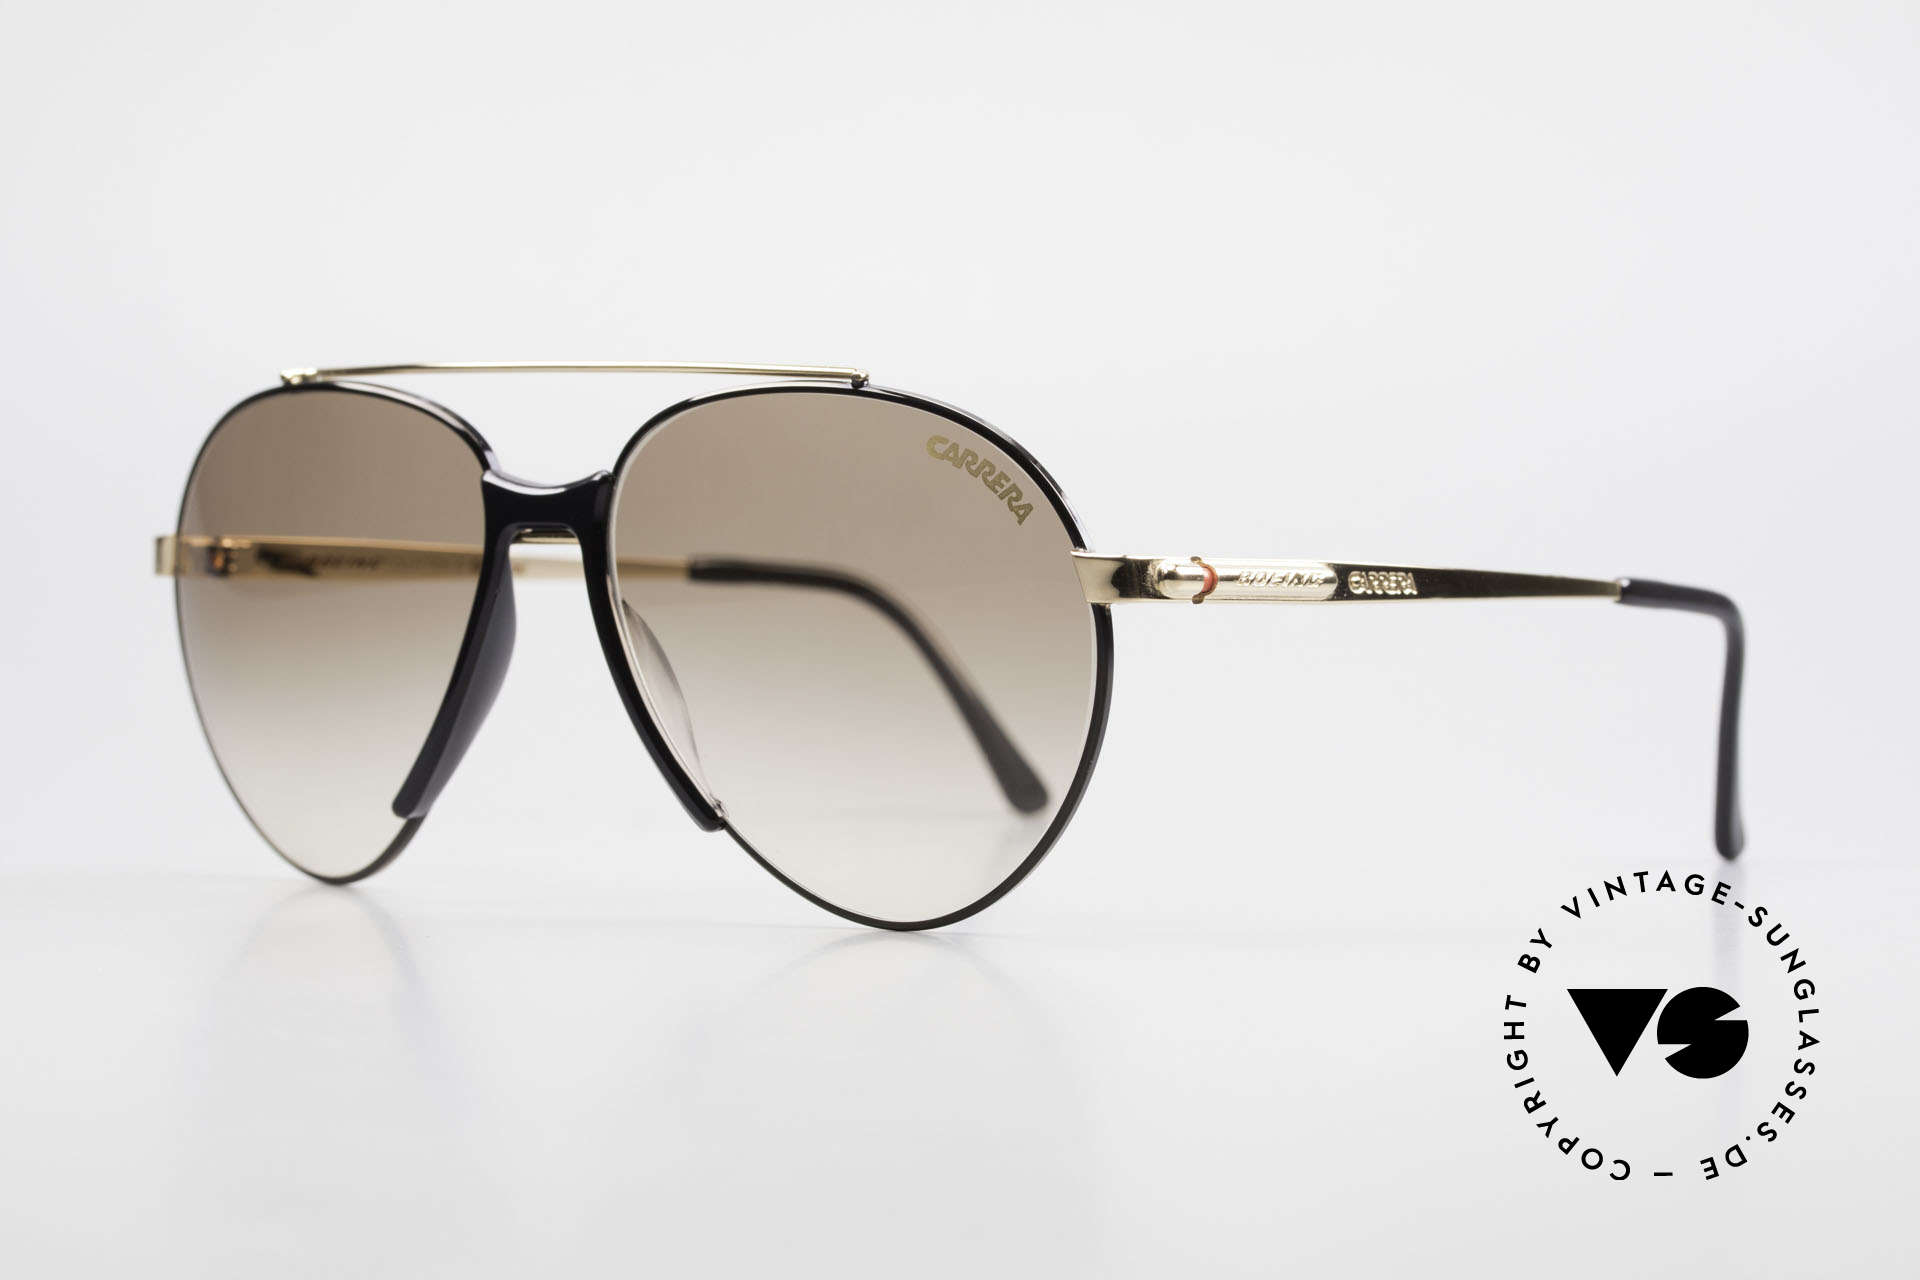 Boeing 5734 Old Glasses 80s Aviator Shades, in the 80's, exclusively produced for the Boeing pilots, Made for Men and Women